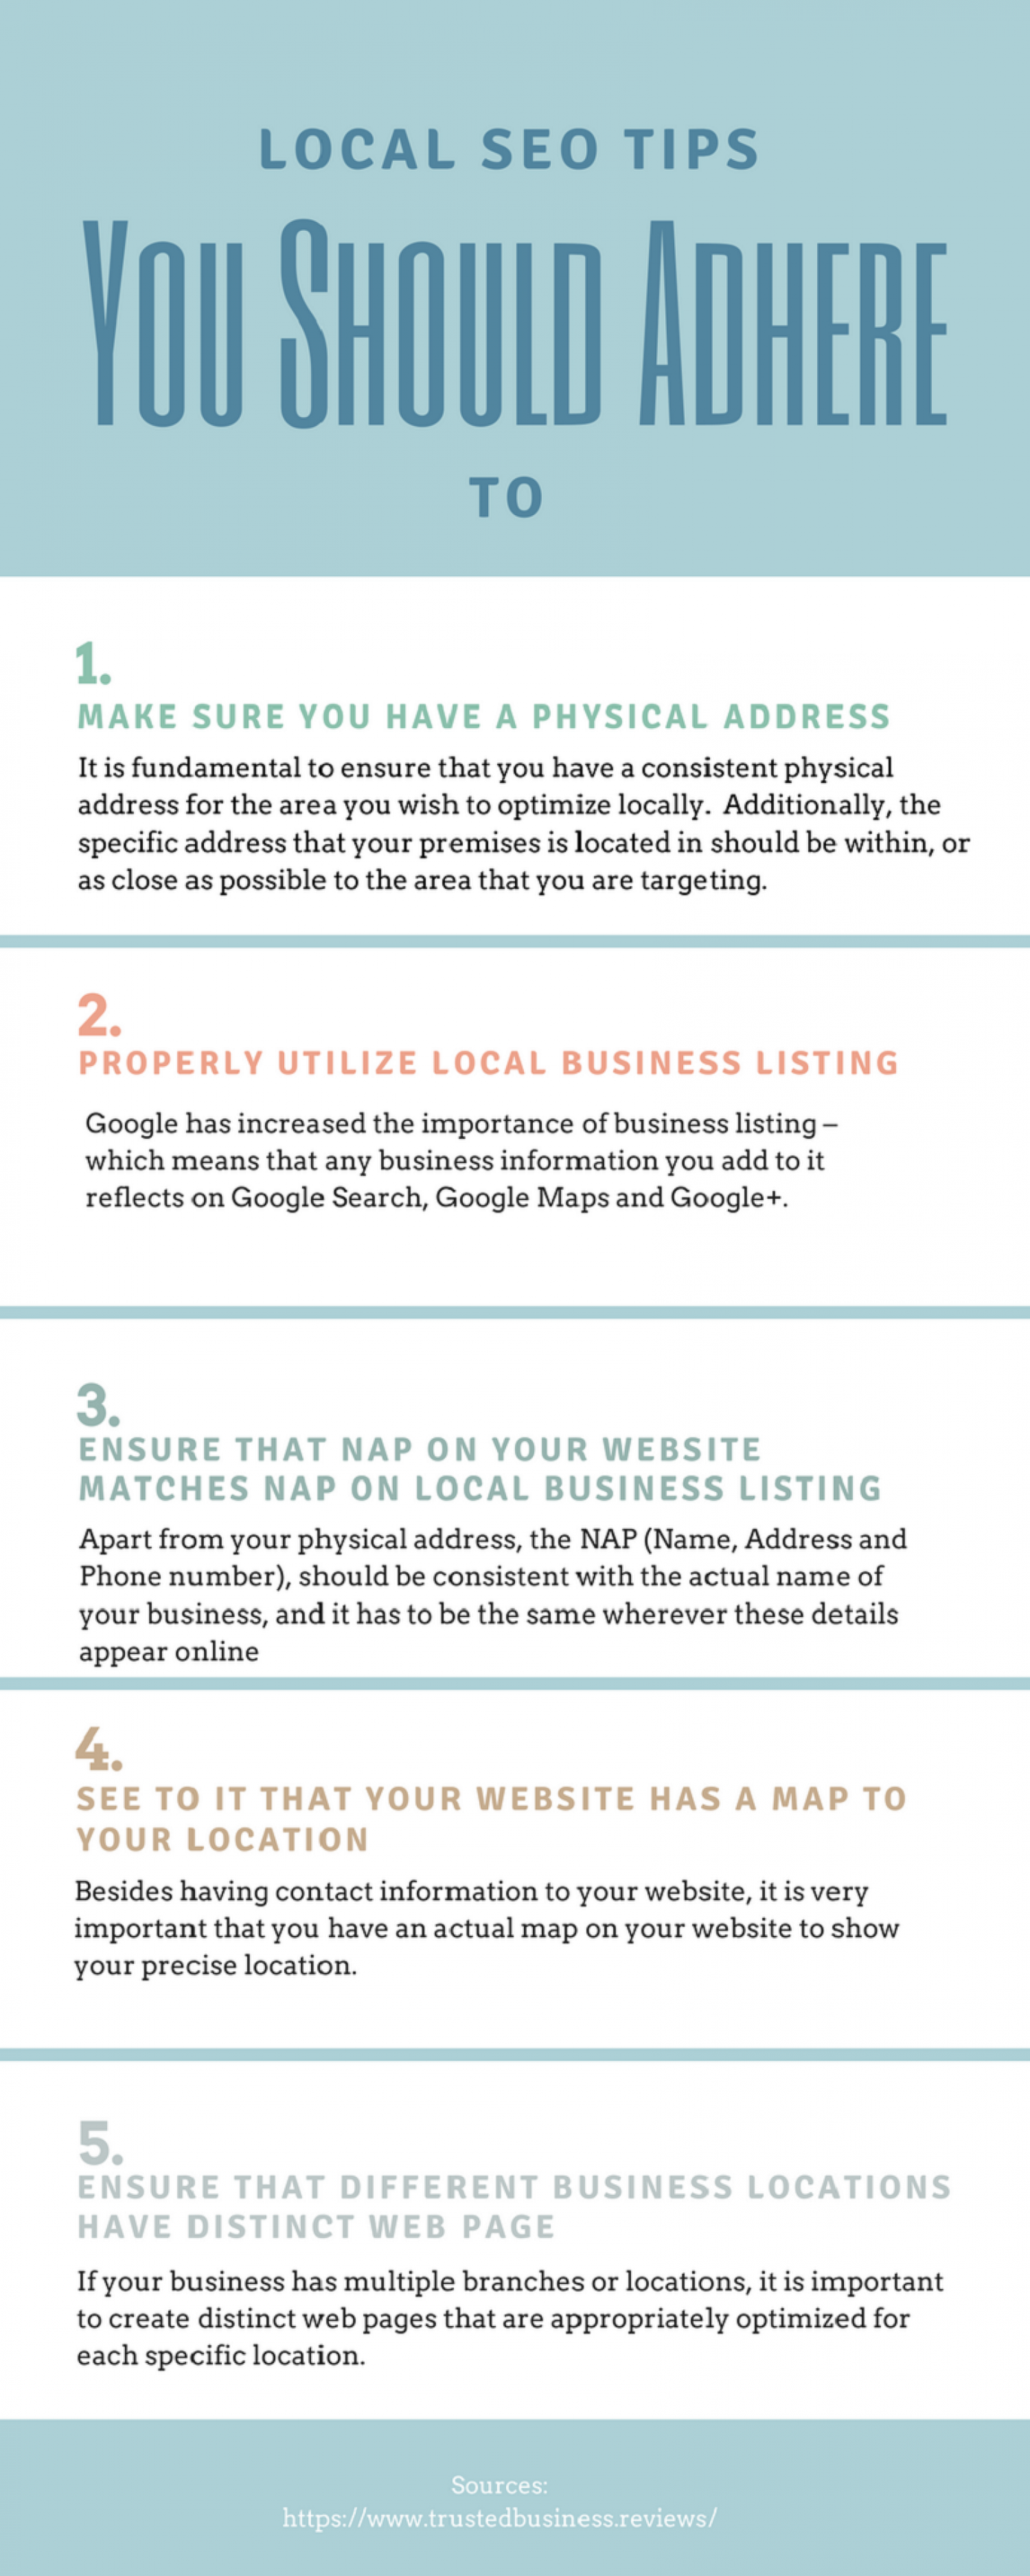 Trusted Business Reviews - Local SEO Tips You Should Adhere to Infographic